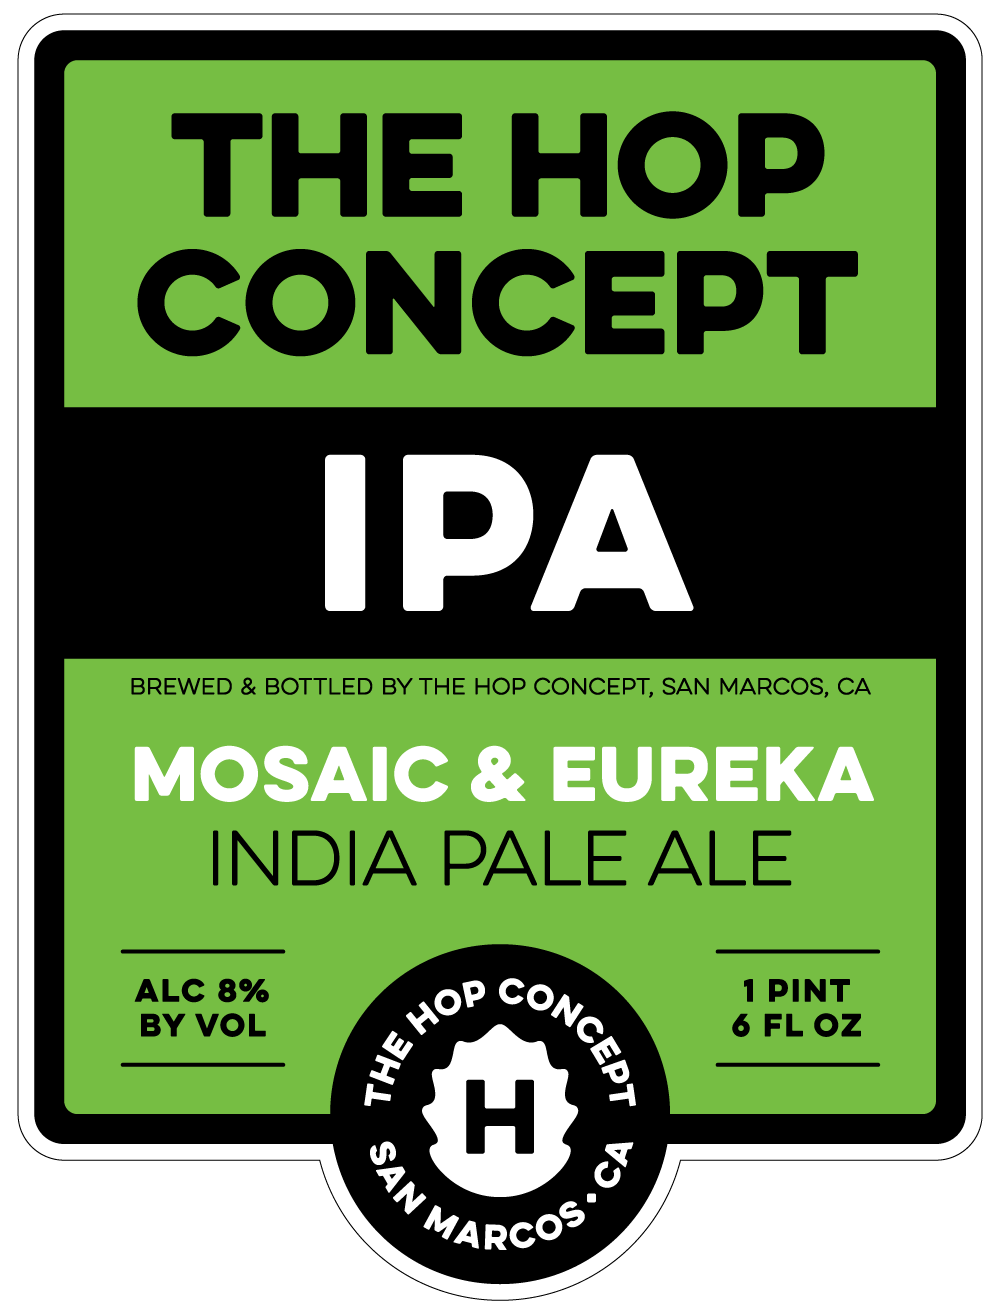 image courtesy The Hop Concept in San Marcos, California